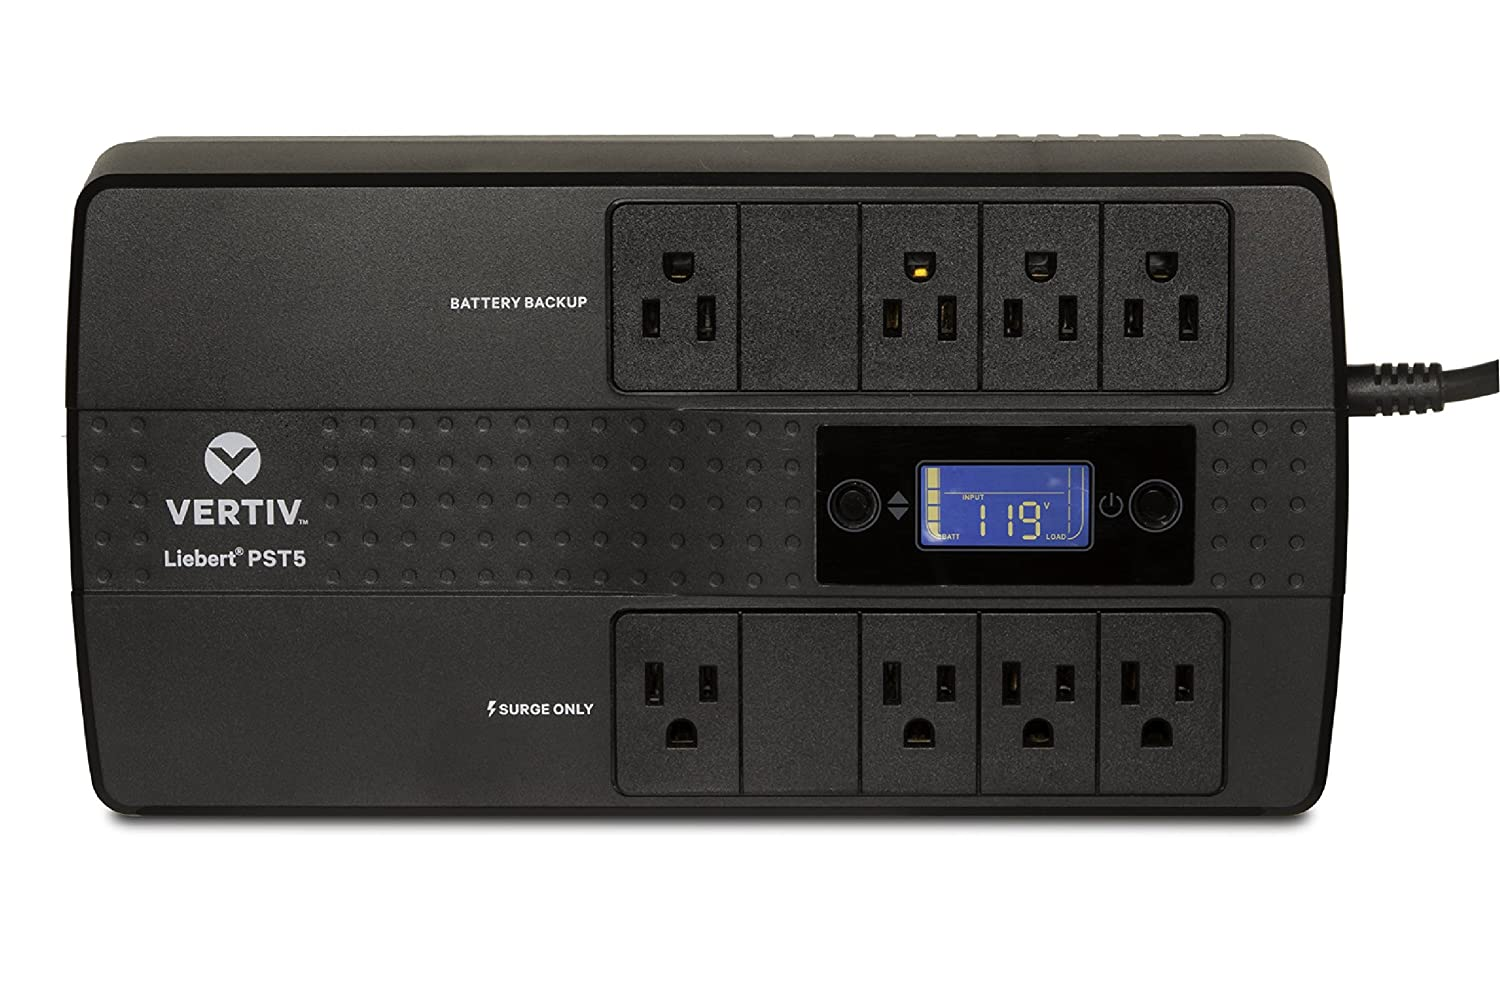 Vertiv Liebert PST5 350VA 200W UPS with Battery Backup & Surge Protection, Eight outlets and a Three-Year, Full Unit Warranty (PST5-350MT120) Vertiv Co.